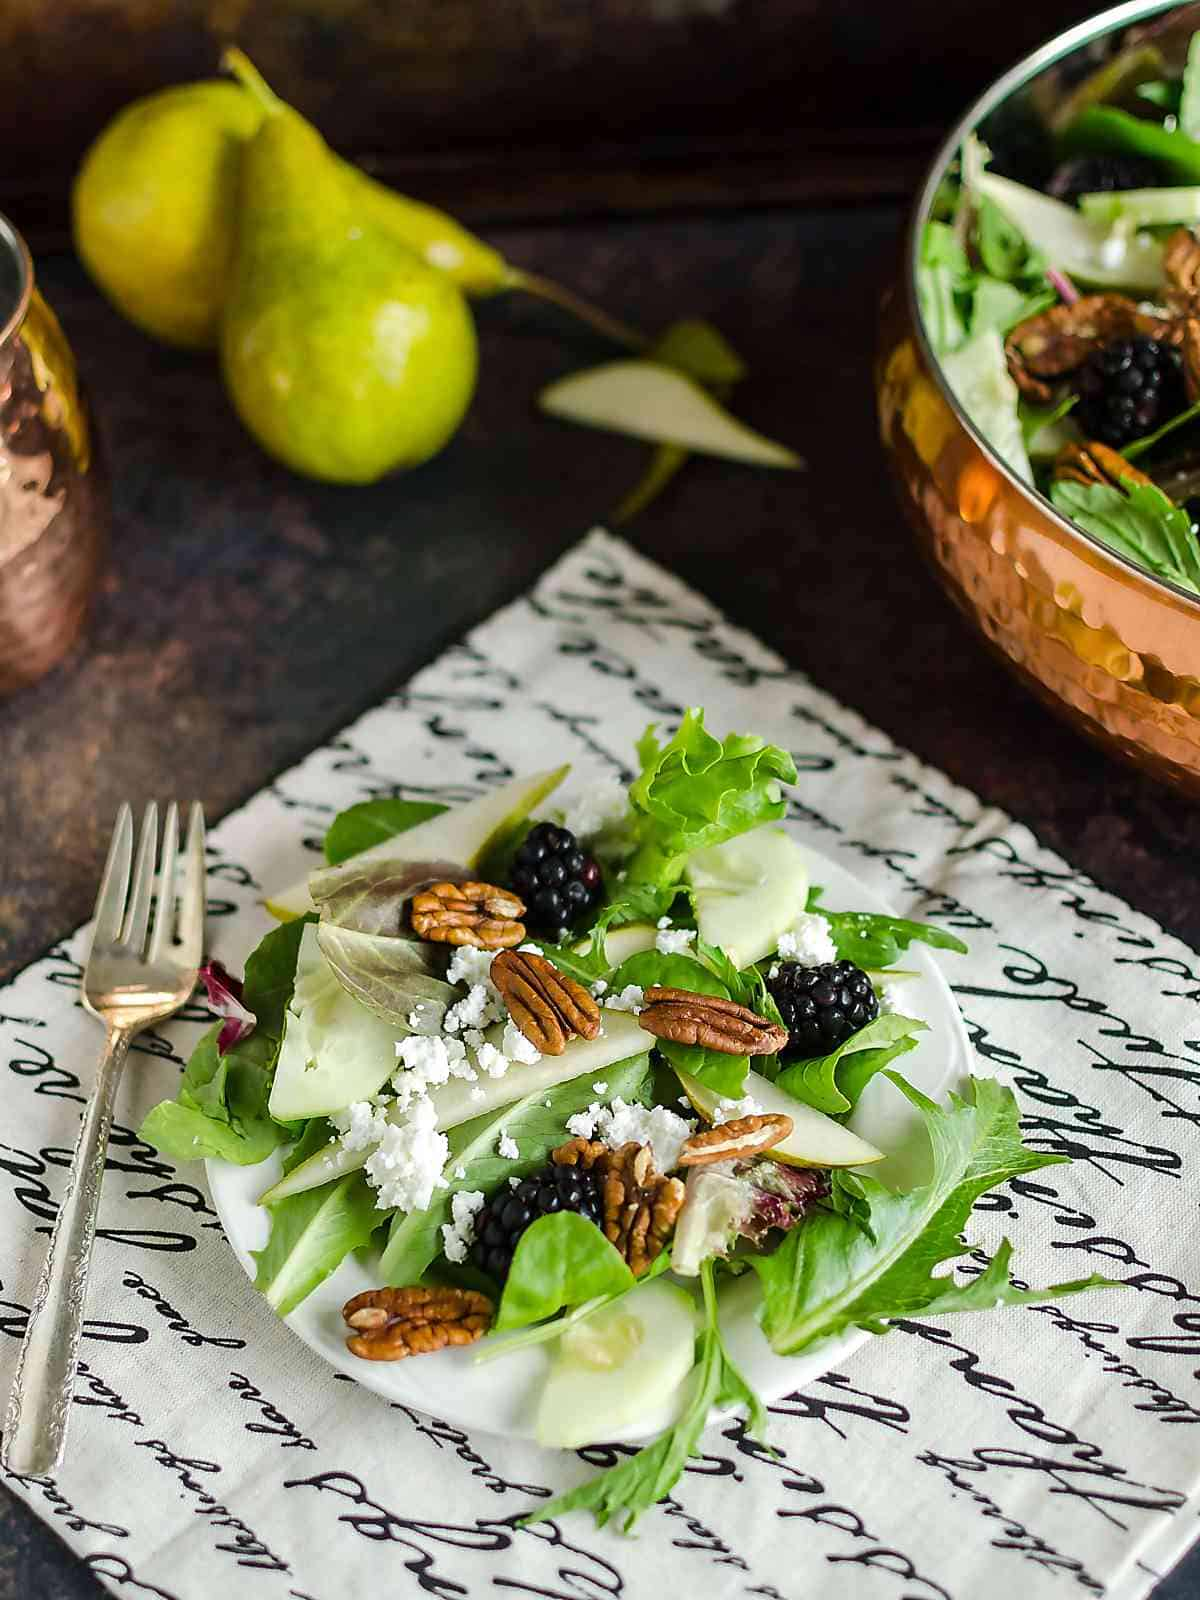 Mixed Greens Salad Recipe ~ a plate full of mixed green salad recipe that contains field greens, fresh pear slices, black berries, crumbled white cheese and pecan halves, bowl of salad in the background and 2 full pears